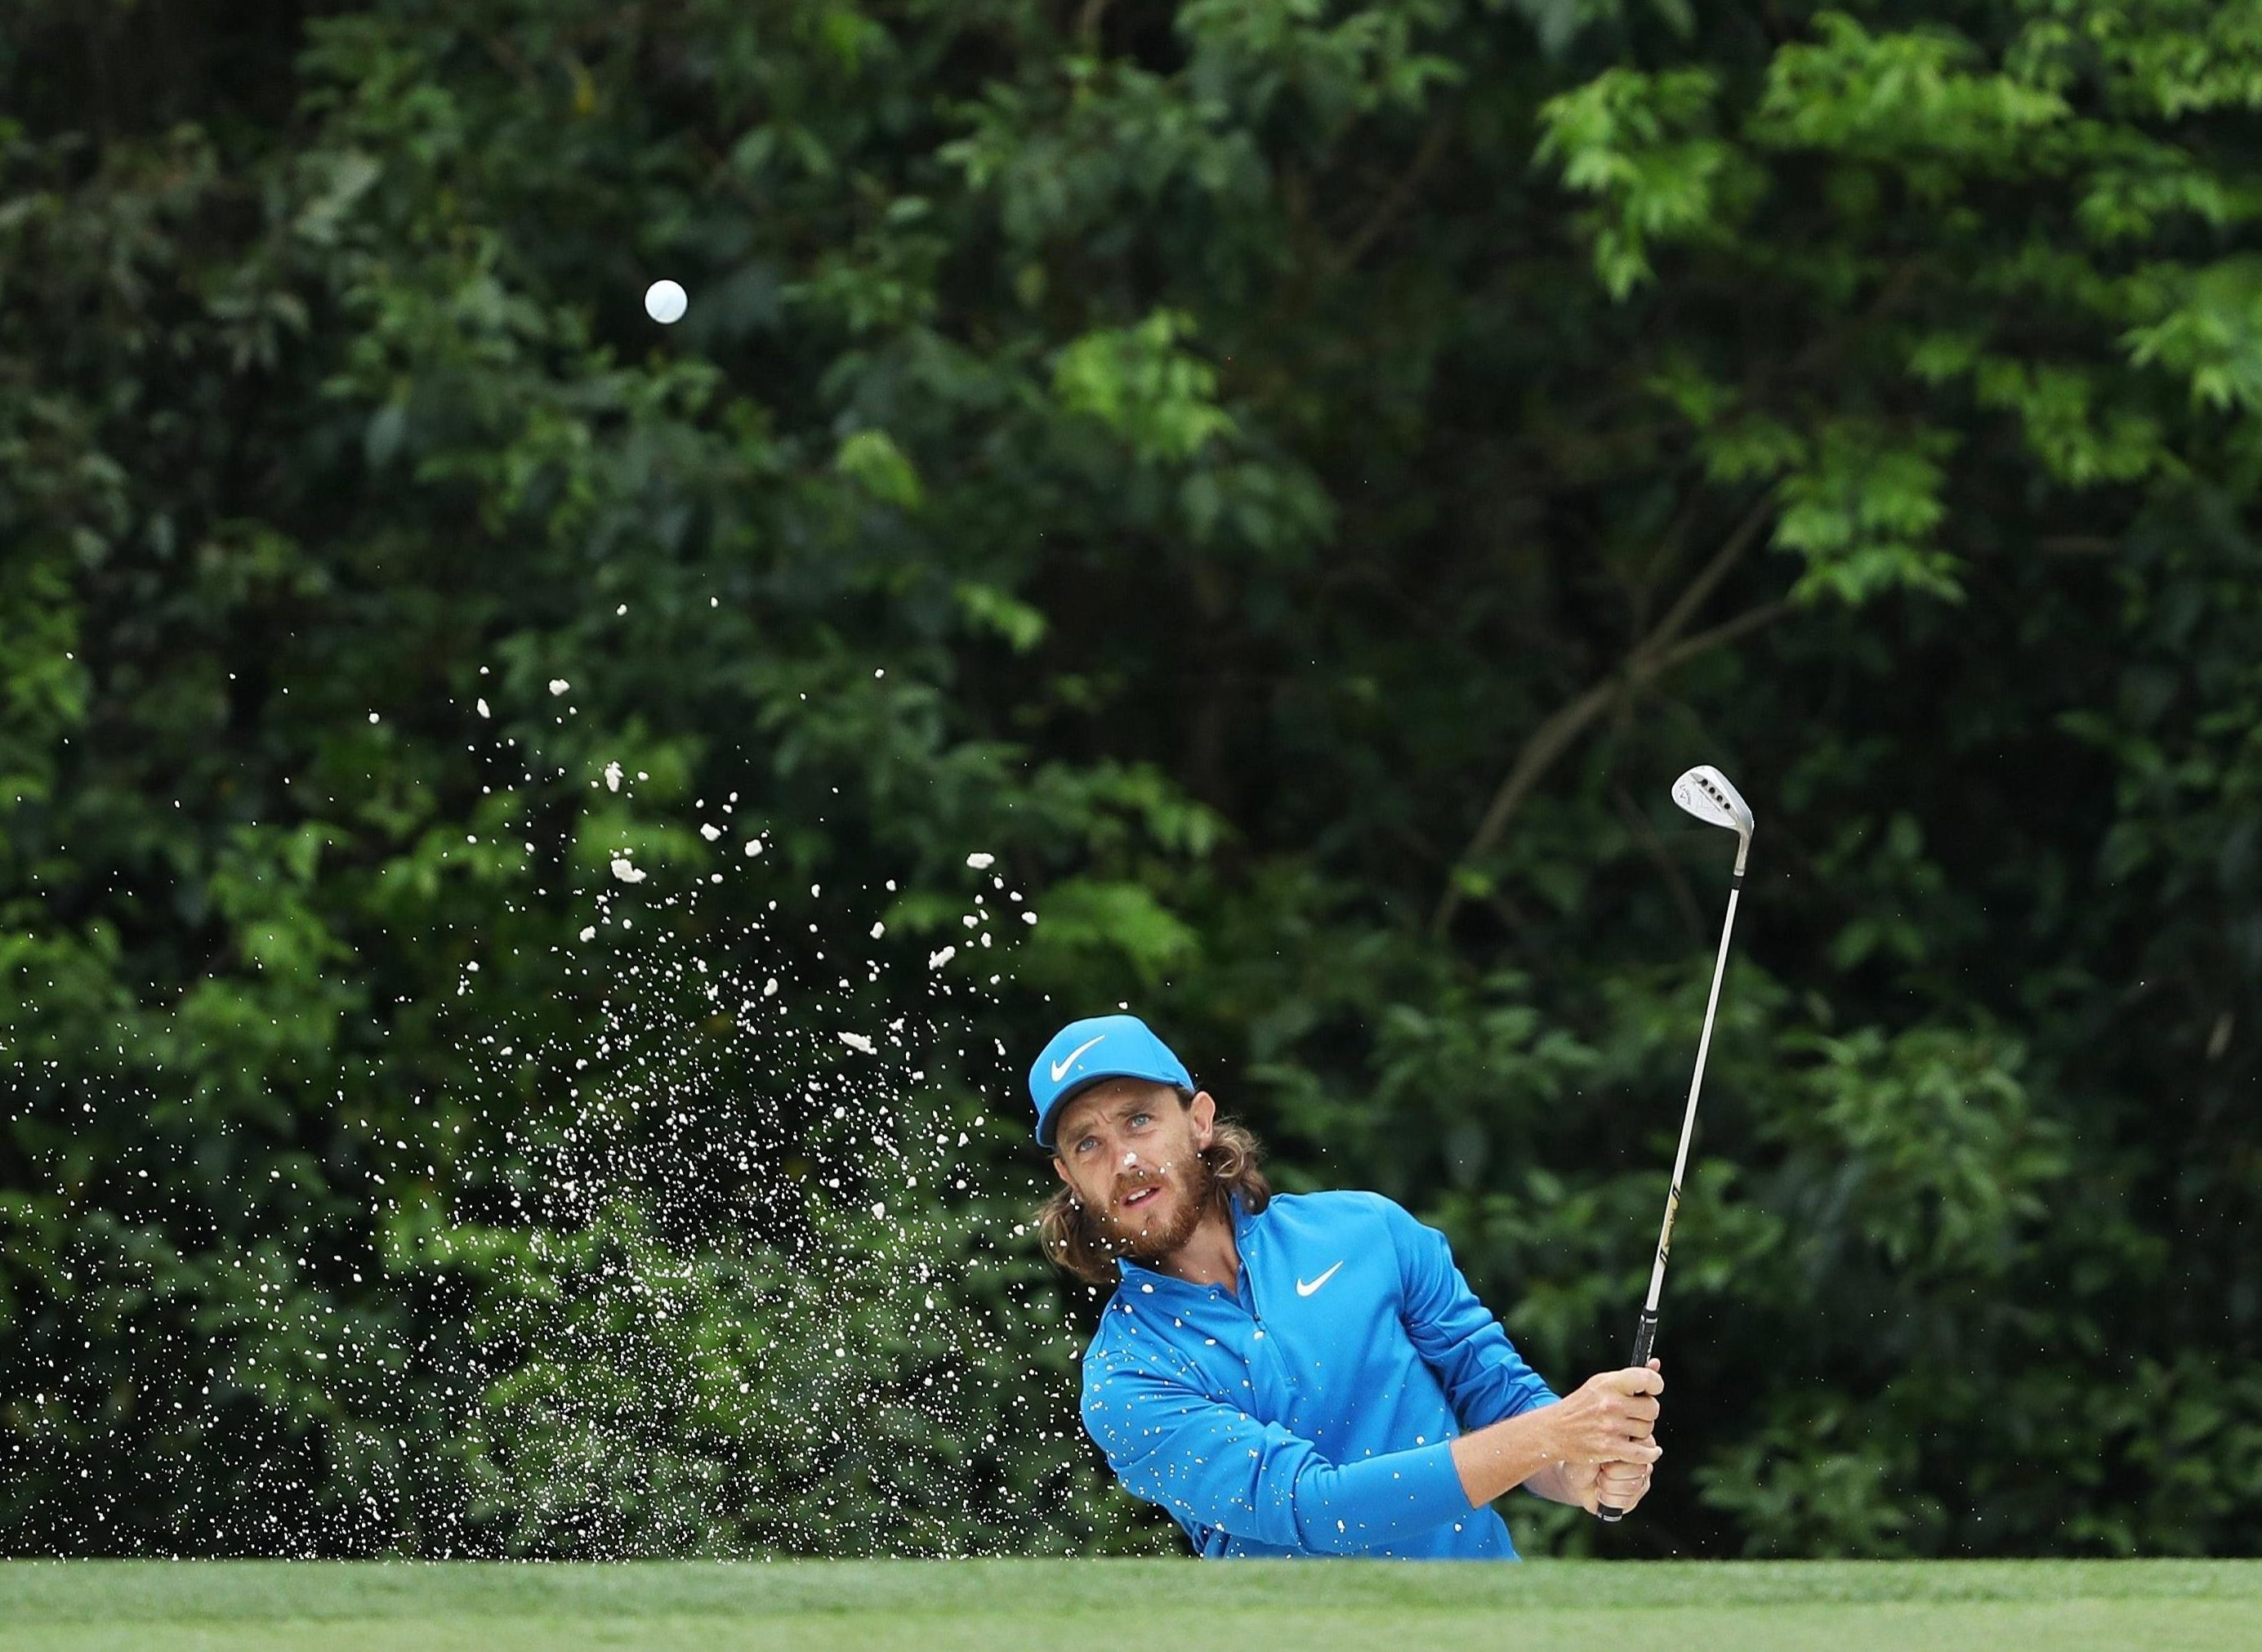 Fleetwood plays a chip shot on the par-four 5th hole at Augusta